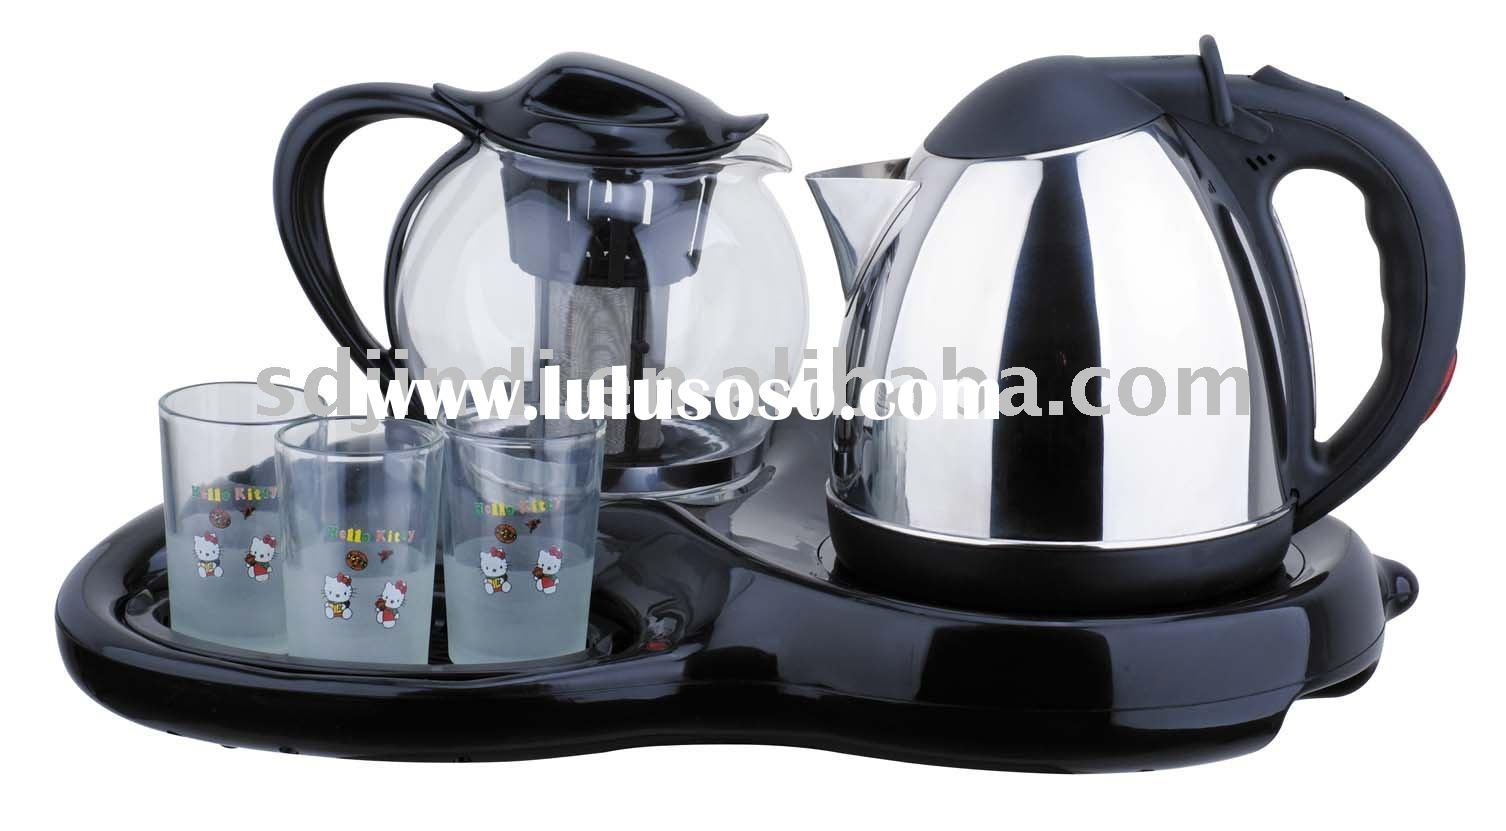 Electric Tea maker, 1.2L stainless steel kettle set with CB CE EMC GS approvals